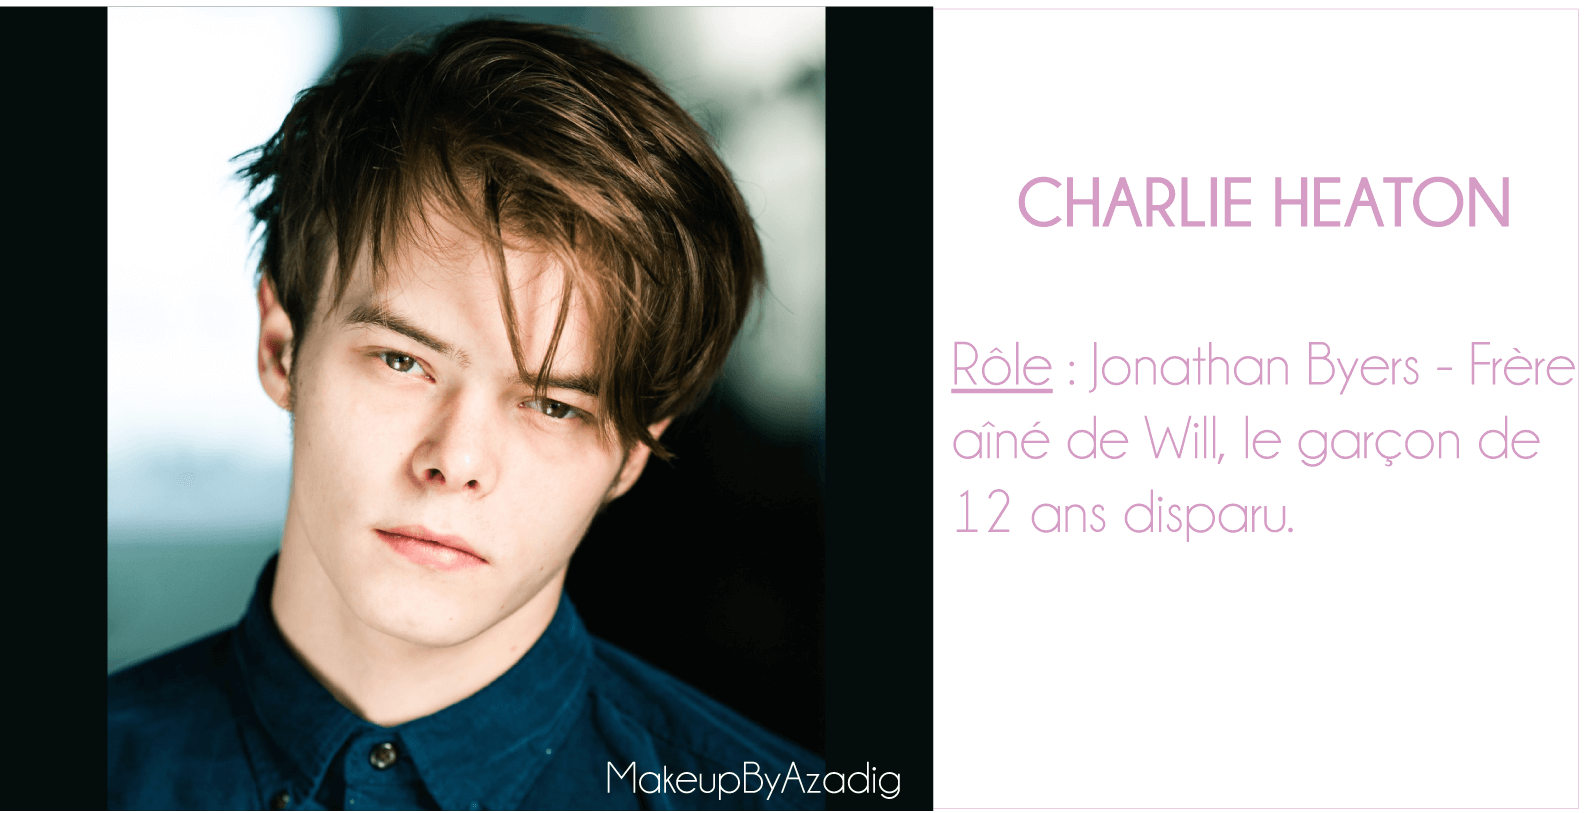 charlie-heaton-makeupbyazadig-stranger things-netflix-serie